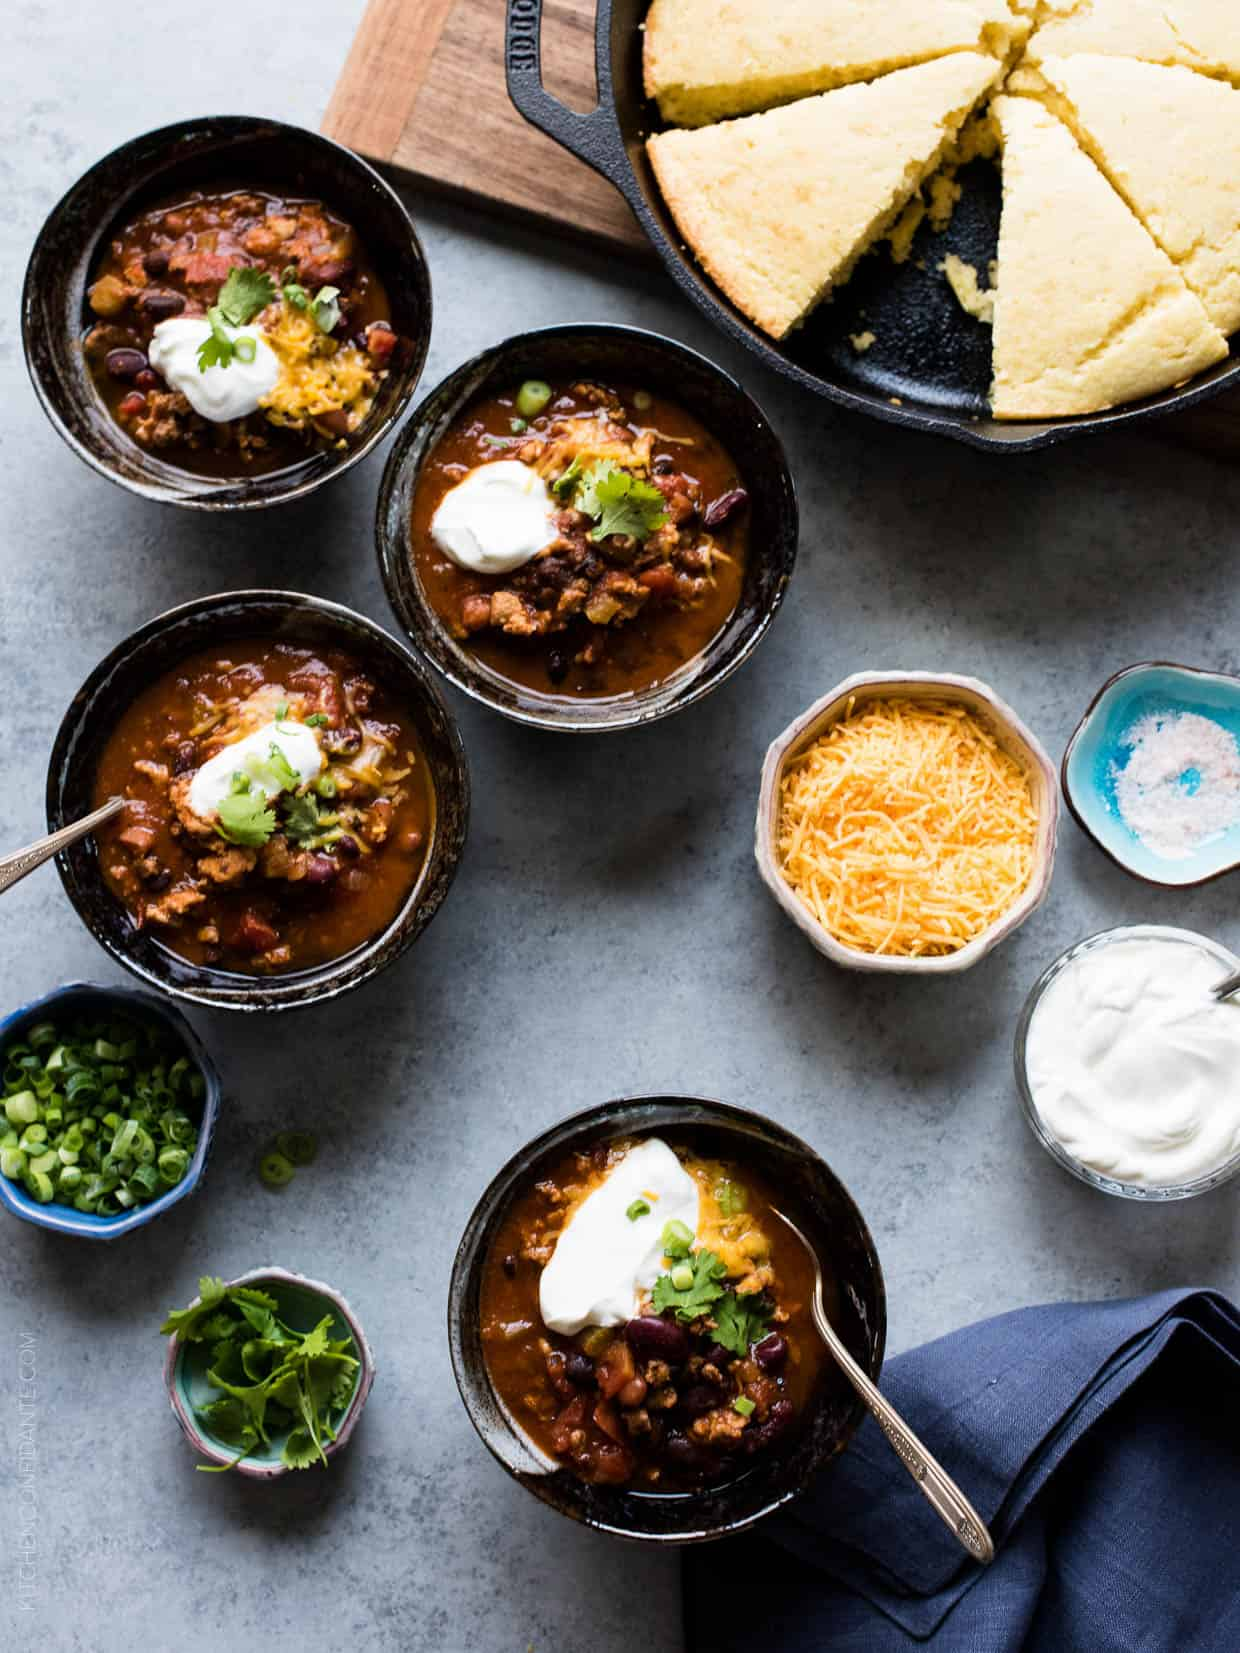 Four bowls of Classic Chili garnished with shredded cheese, sour cream, green onions and cilantro with cornbread muffins in the background.